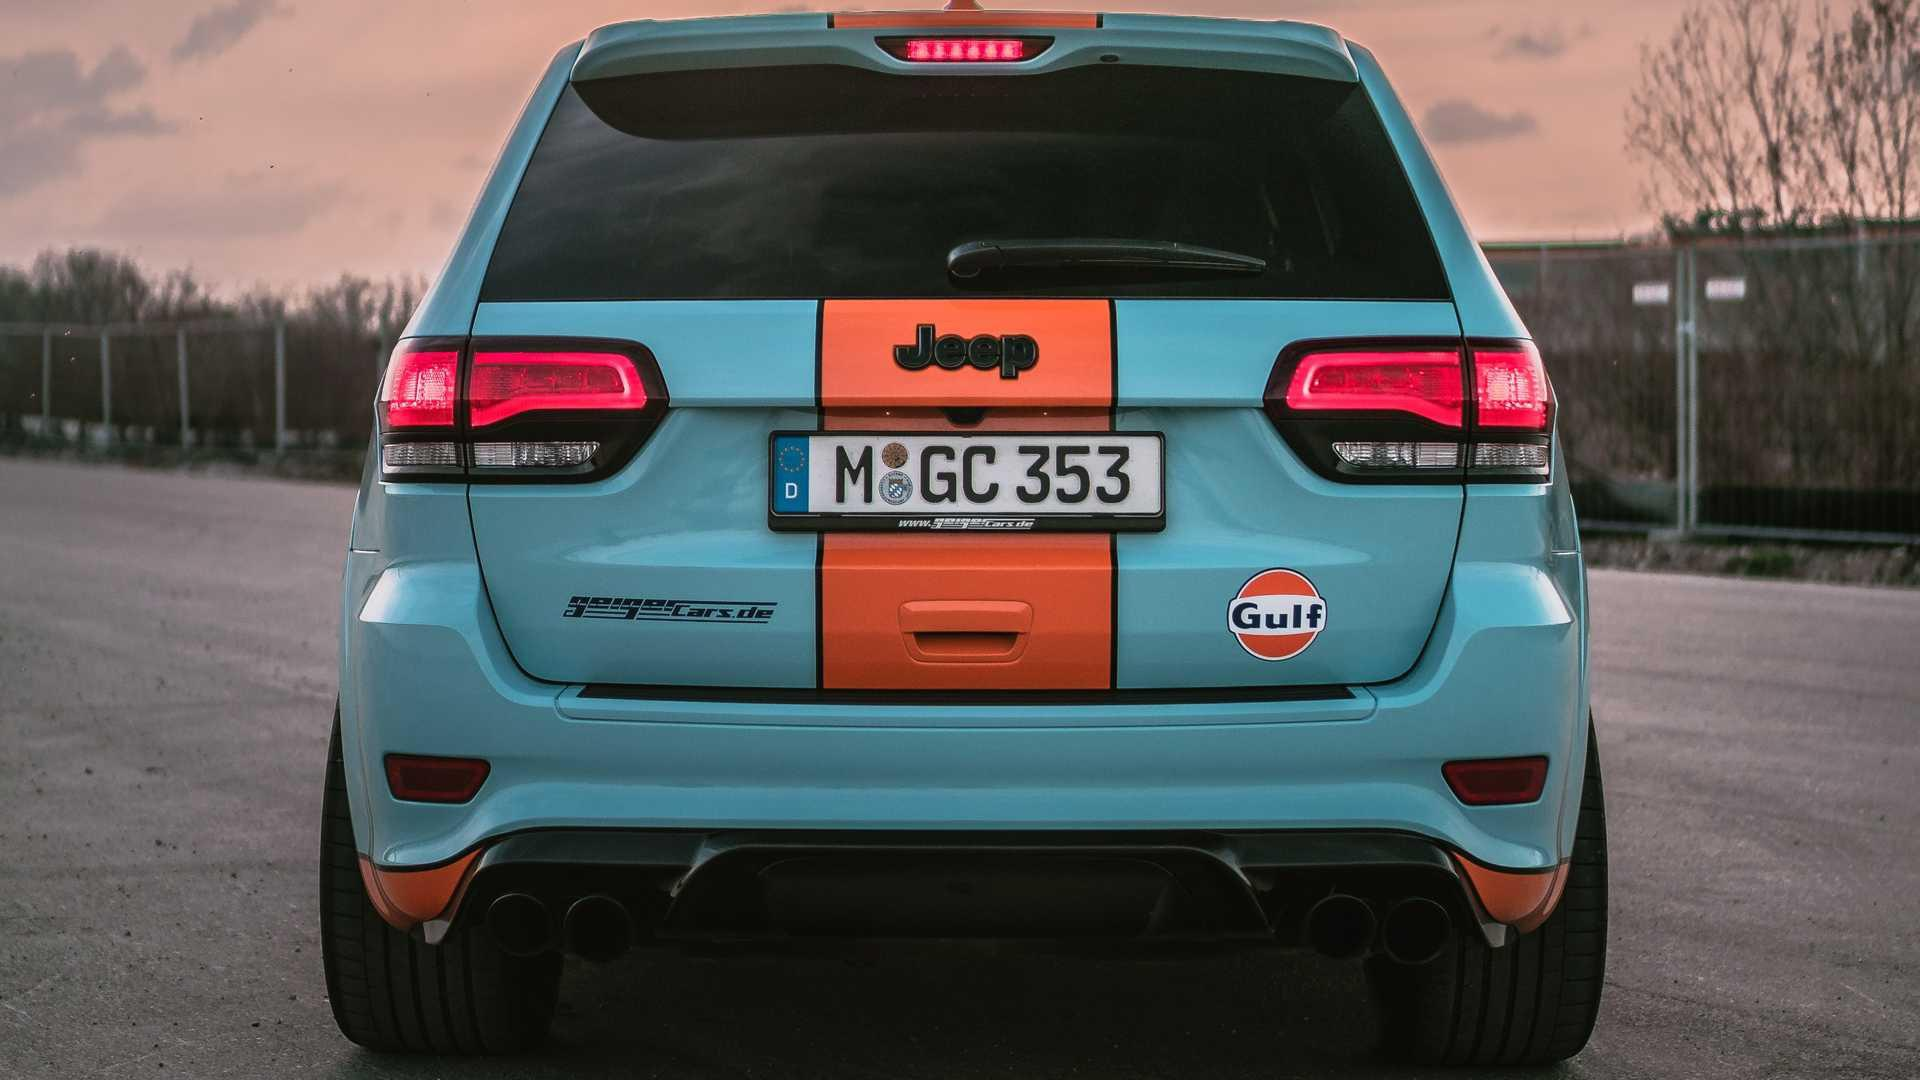 jeep-grand-cherokee-trackhawk-gulf-a-900-chevaux-by-geigercars-1089-3.jpg